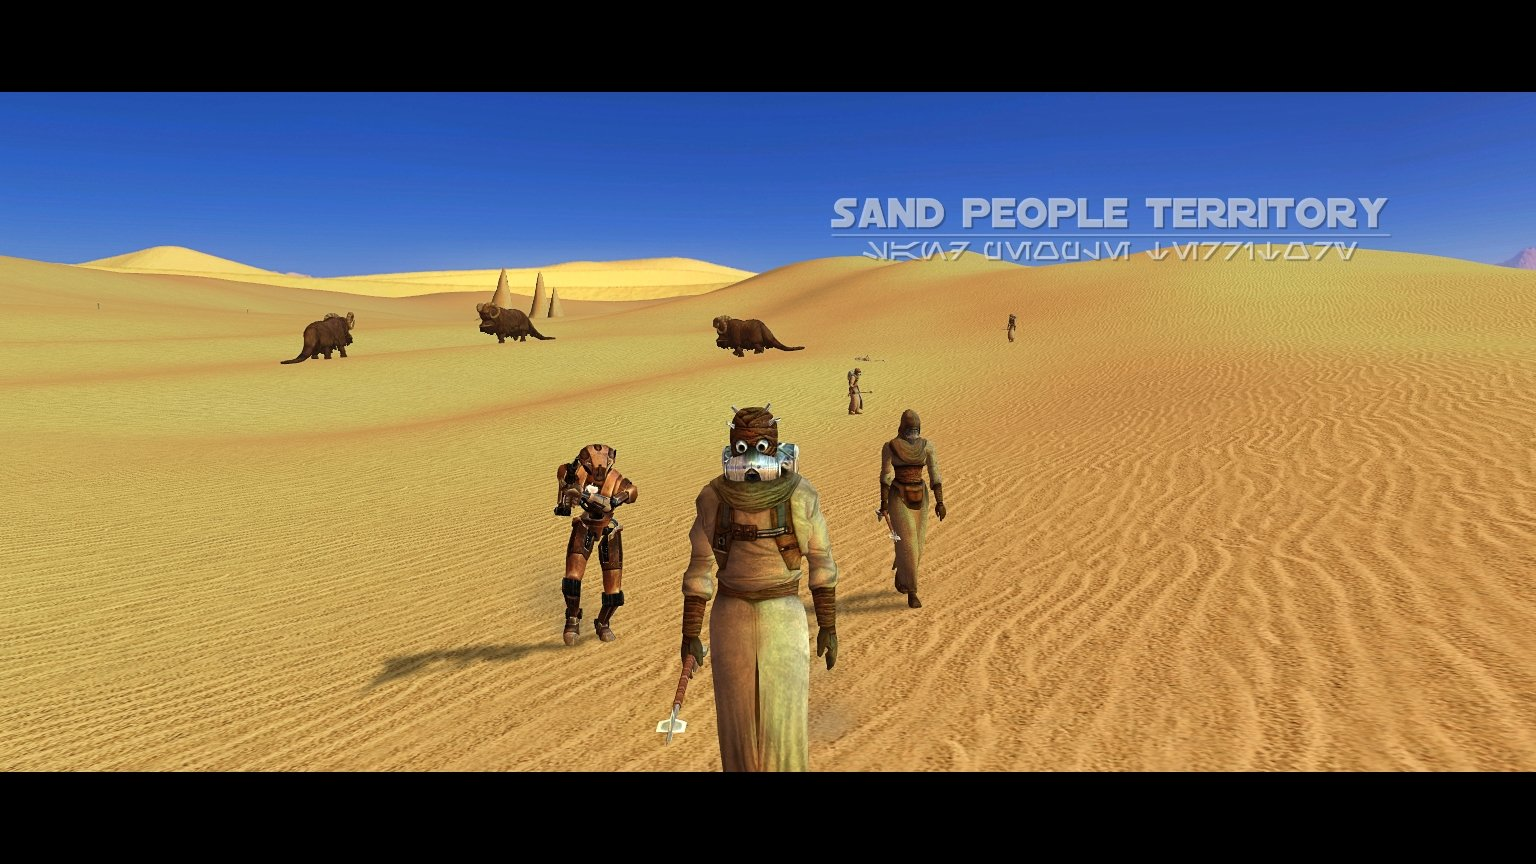 Sand People Territory: The Companions